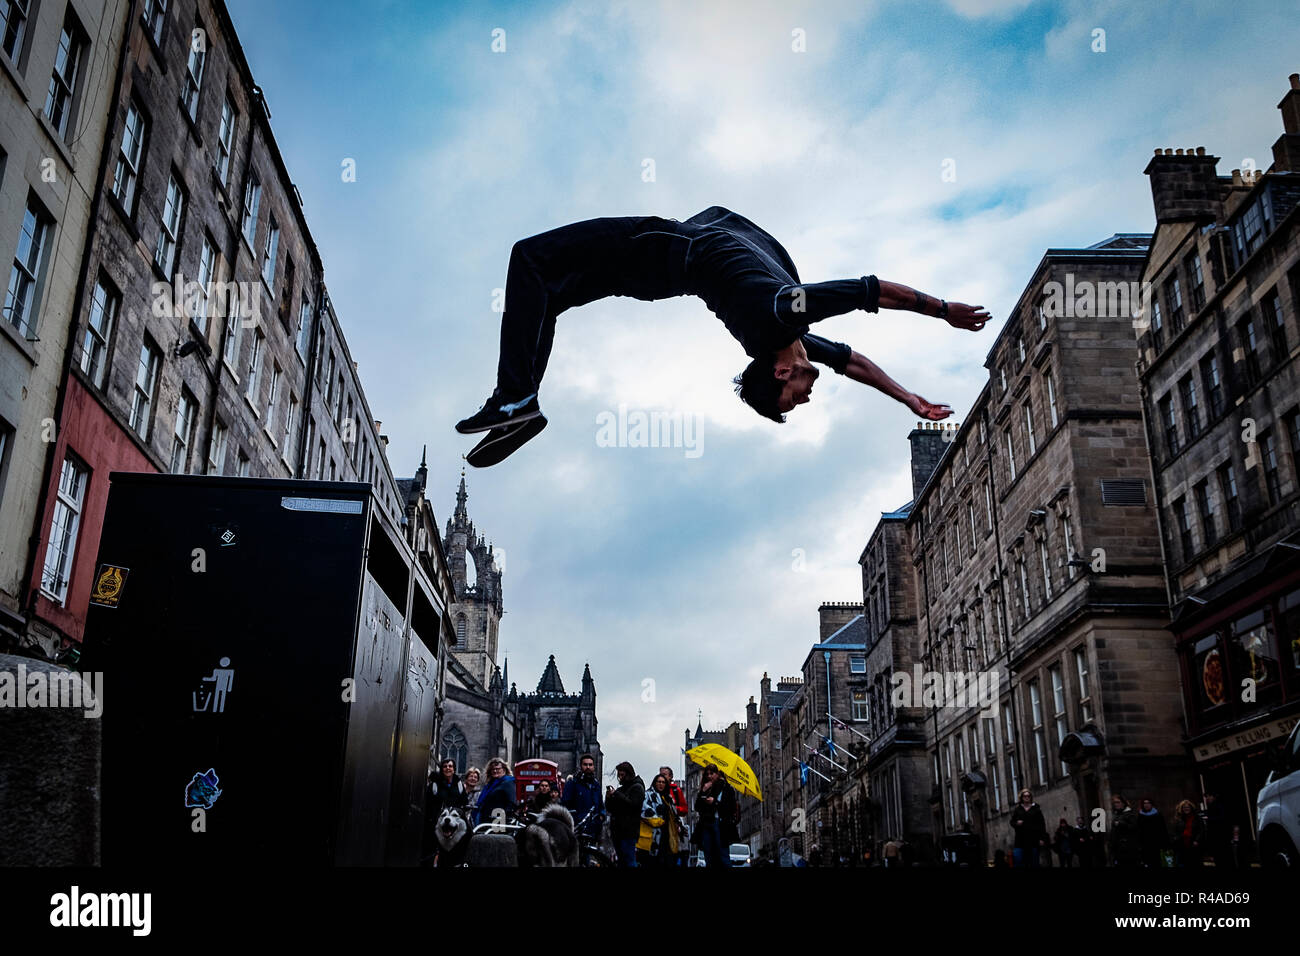 Images from the forty eight hour photography challenge Edinburgh - Stock Image